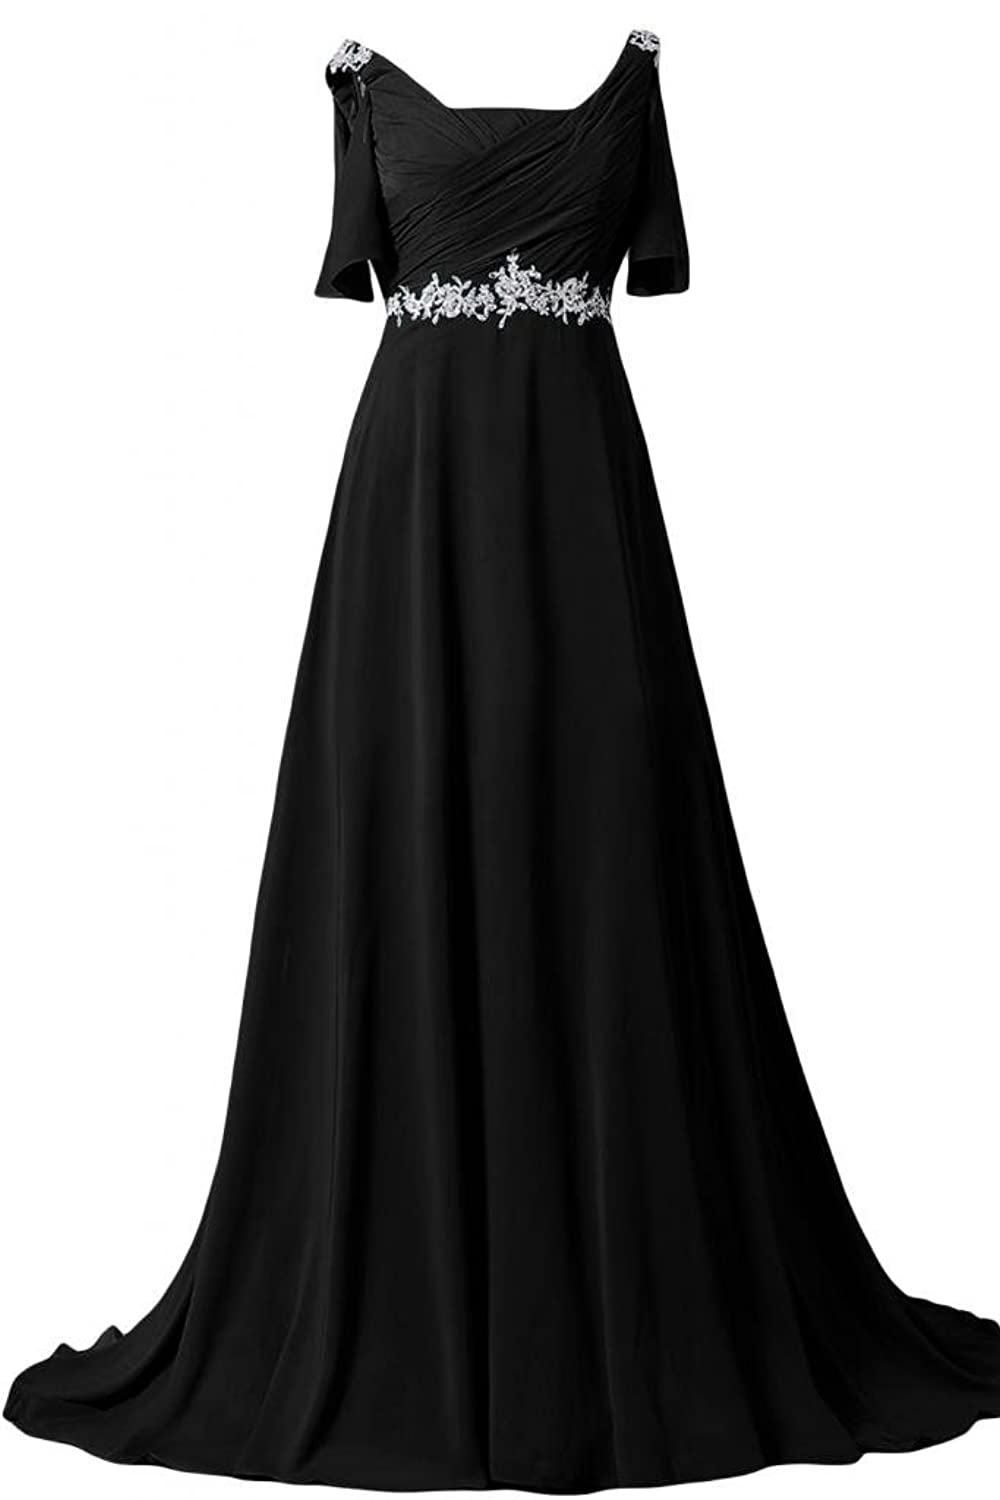 Sunvary A Line Formal Evening Party Dresses Short Sleeves Long Chiffon Prom Gowns